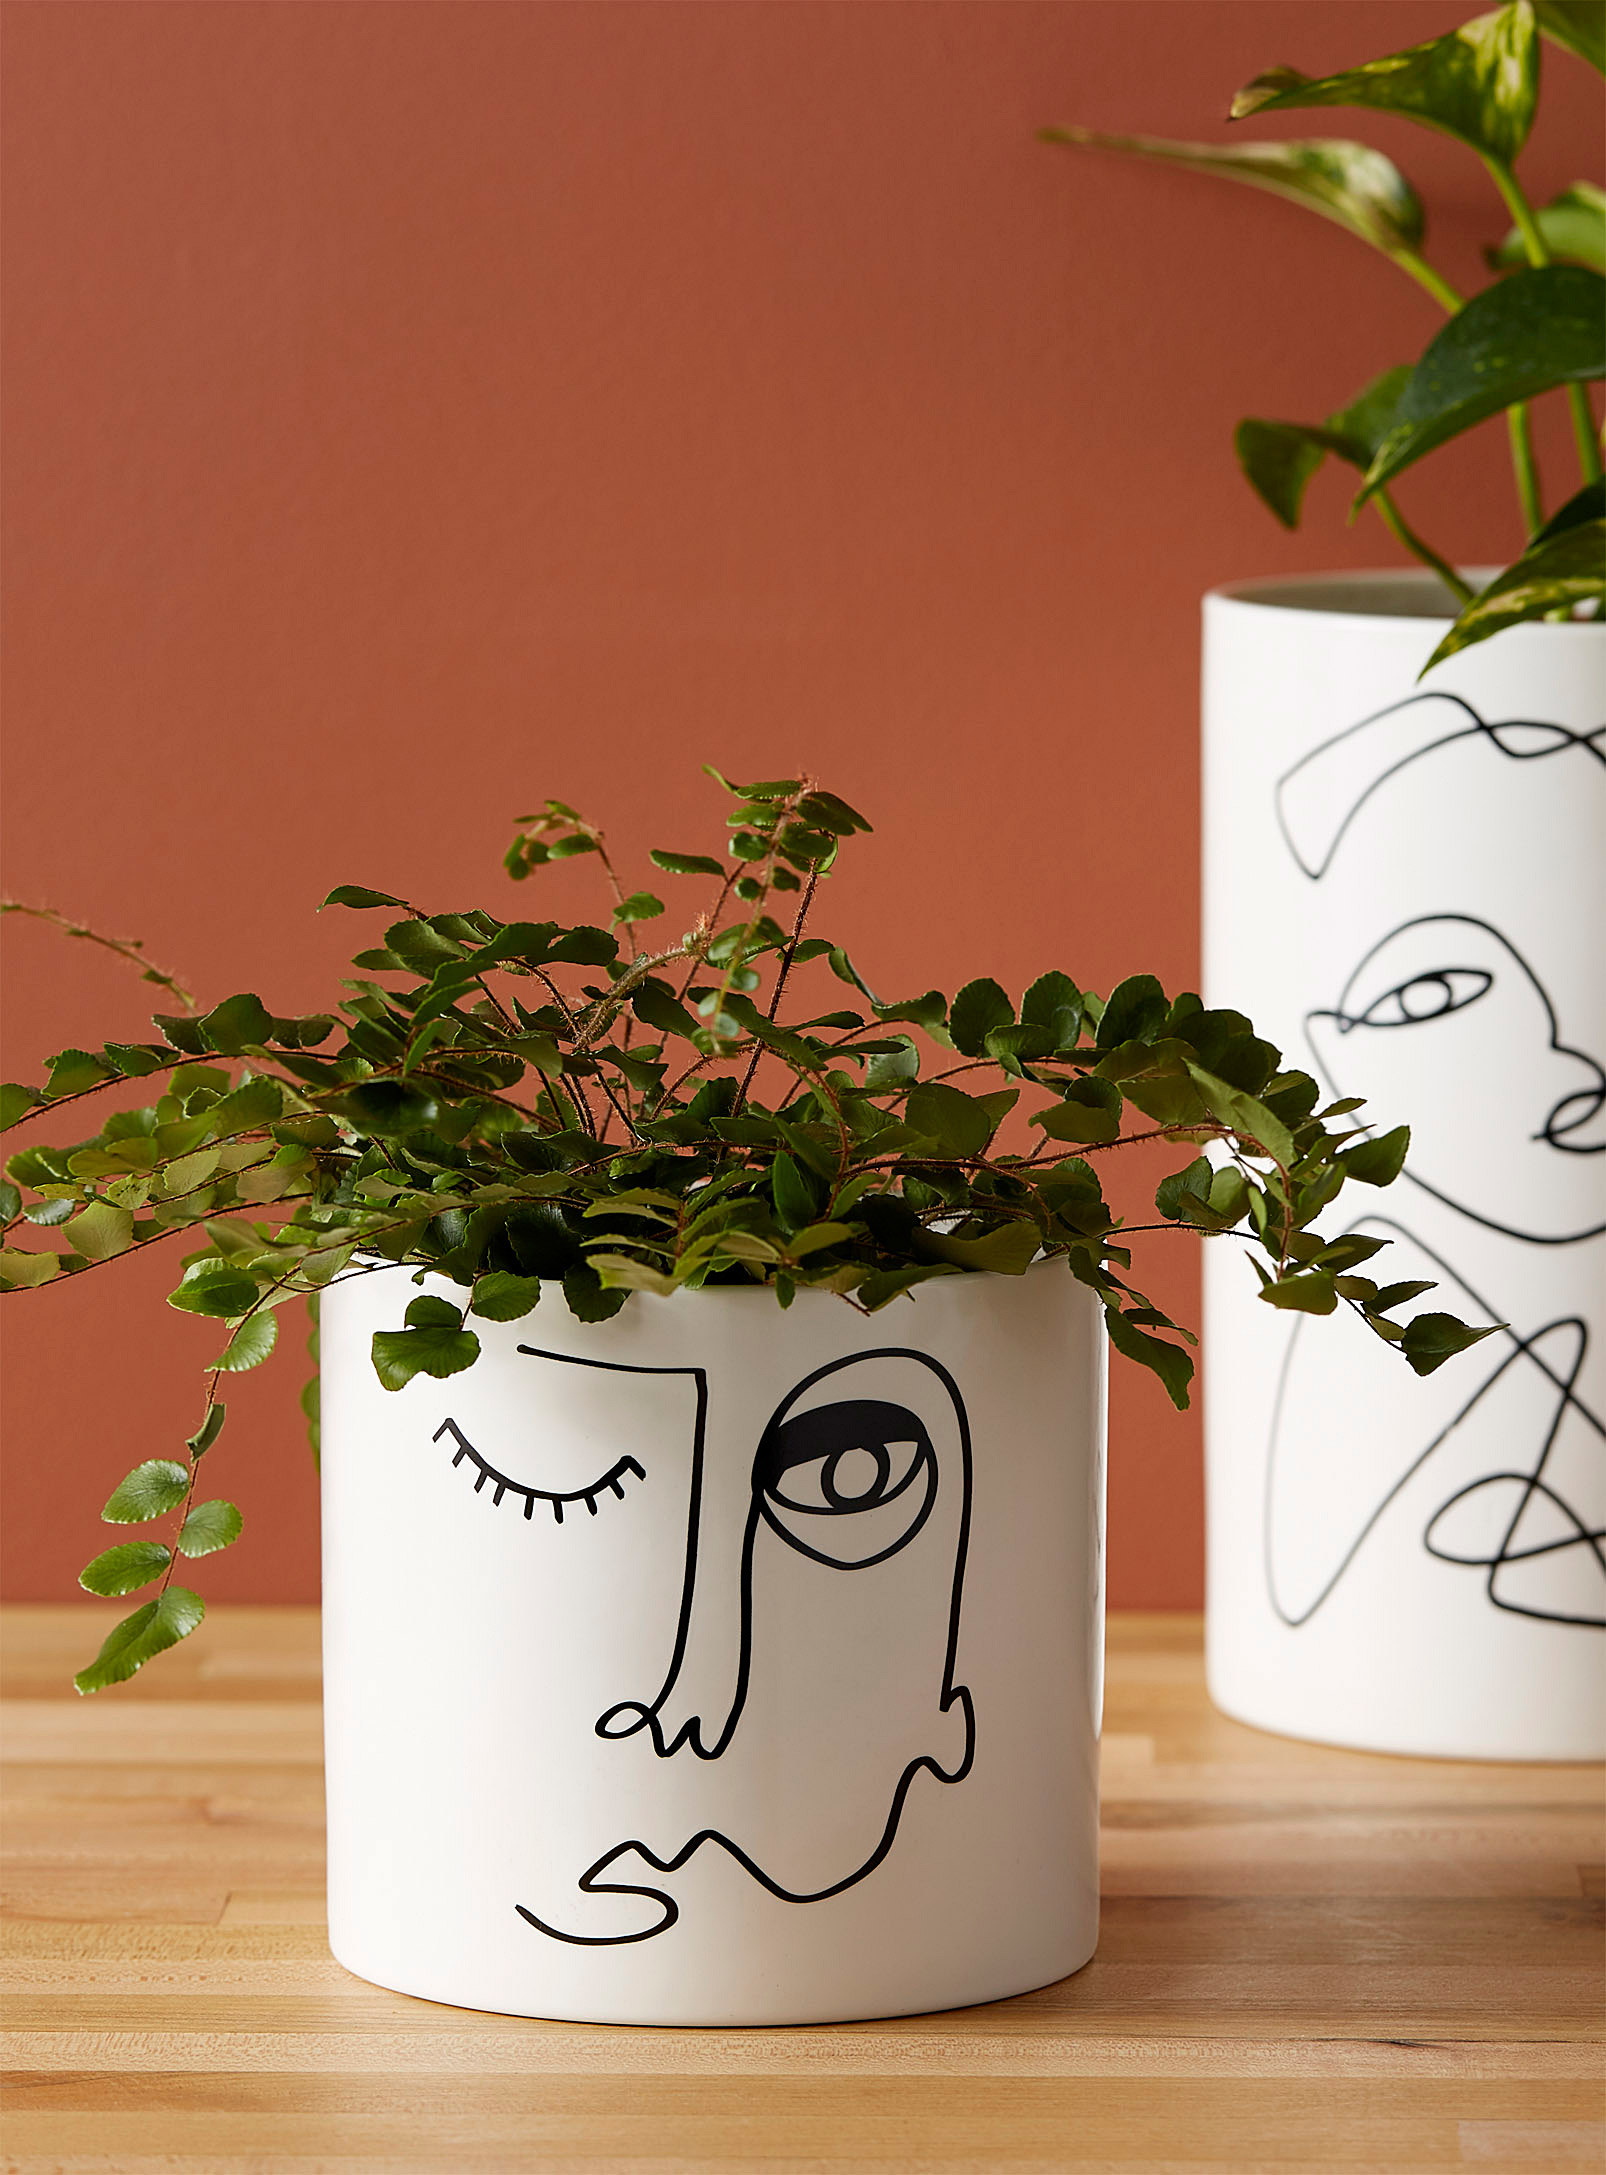 A plain cylindrical planter with an artsy face drawn on it